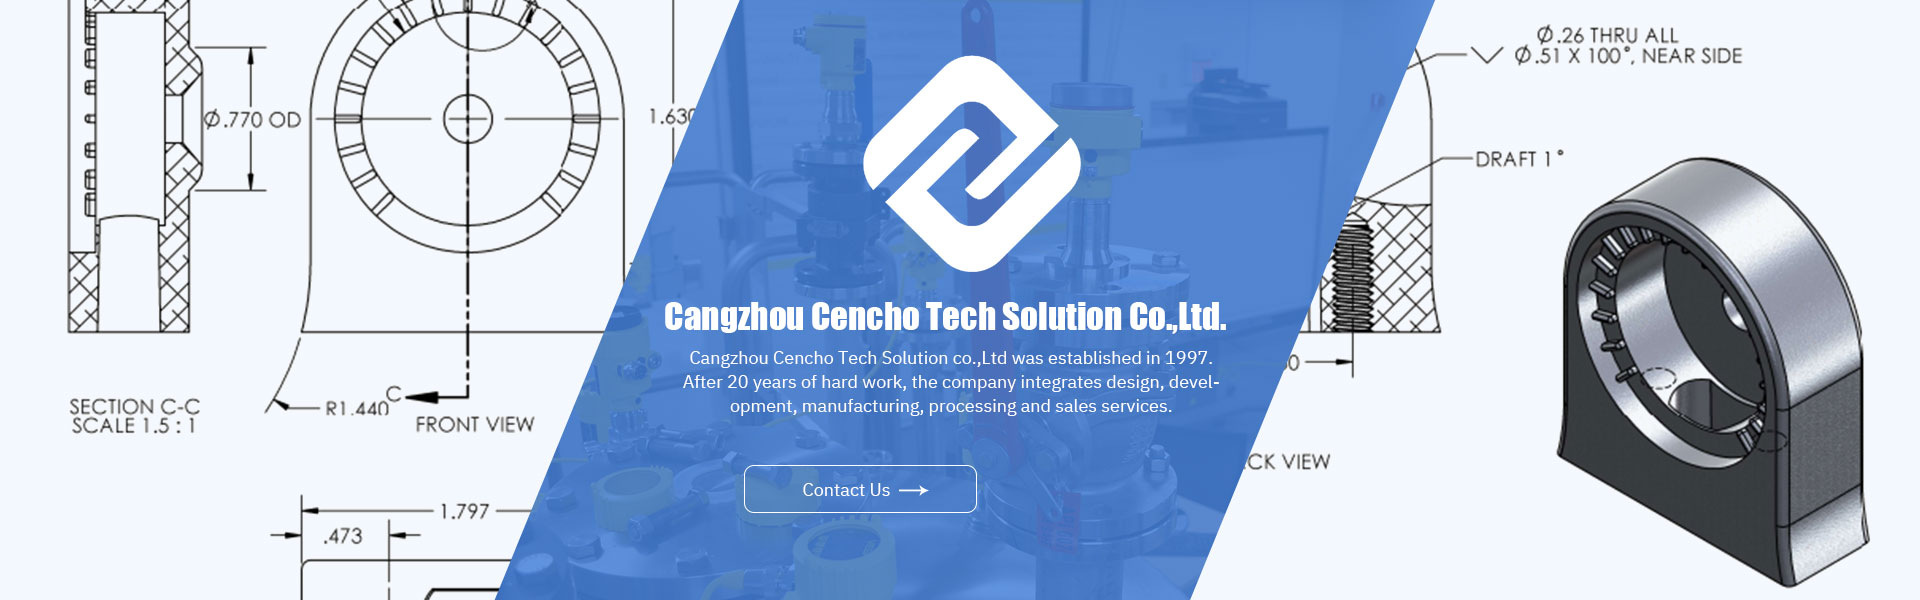 Cangzhou Cencho Tech Solution Co., Ltd.